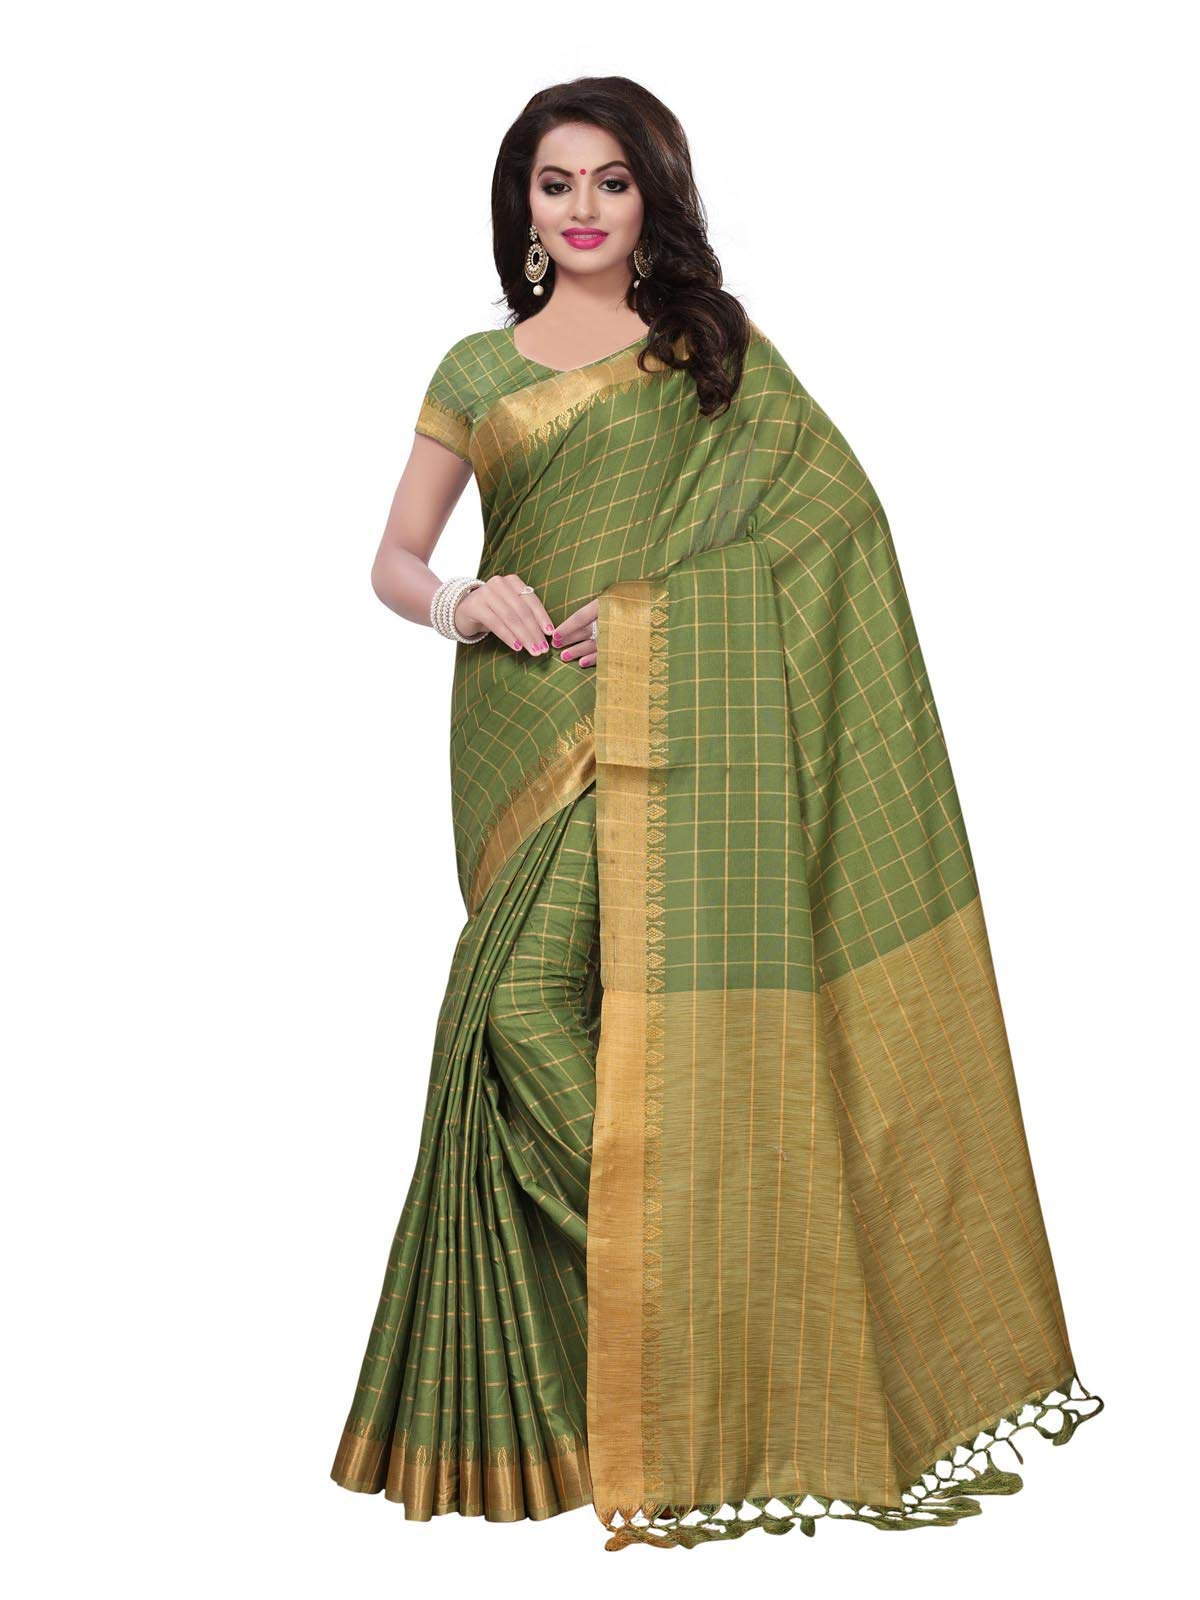 Kanchnar Women's Poly Linen Checks Printed Saree with Blouse